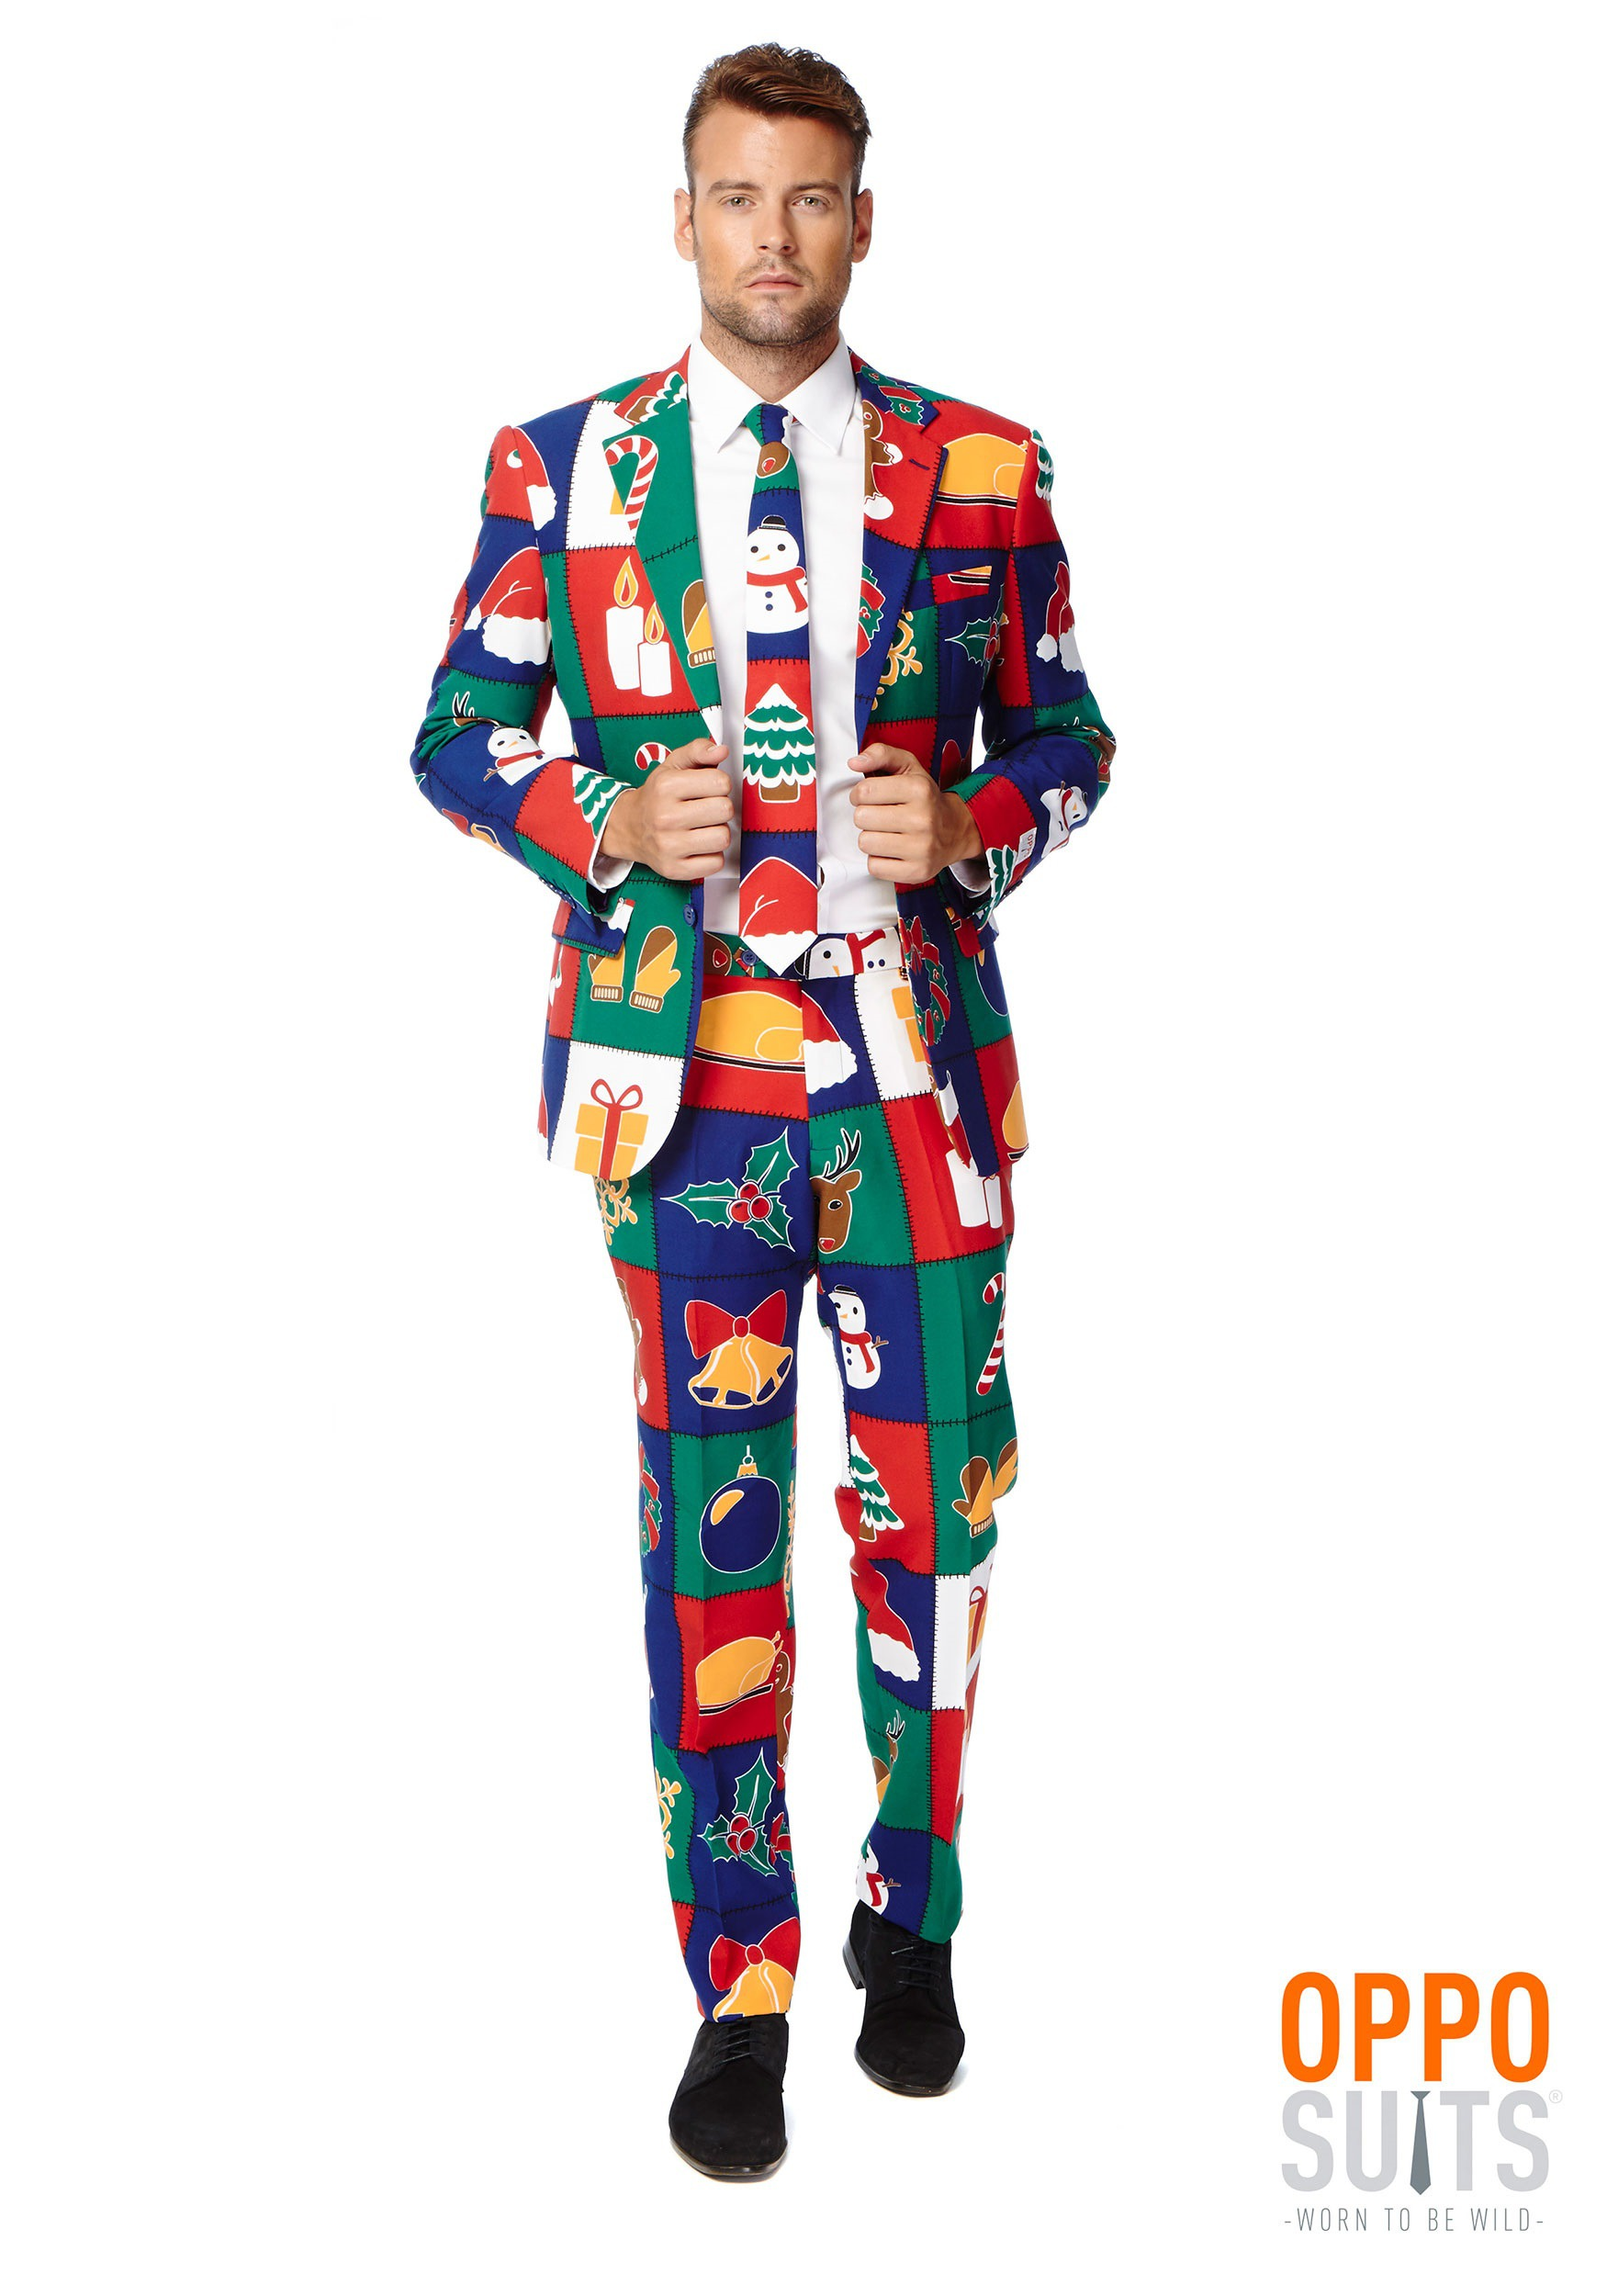 INOpets.com Anything for Pets Parents & Their Pets Men's OppoSuits Quilty Pleasure Holiday Suit Fancy Dress Costume